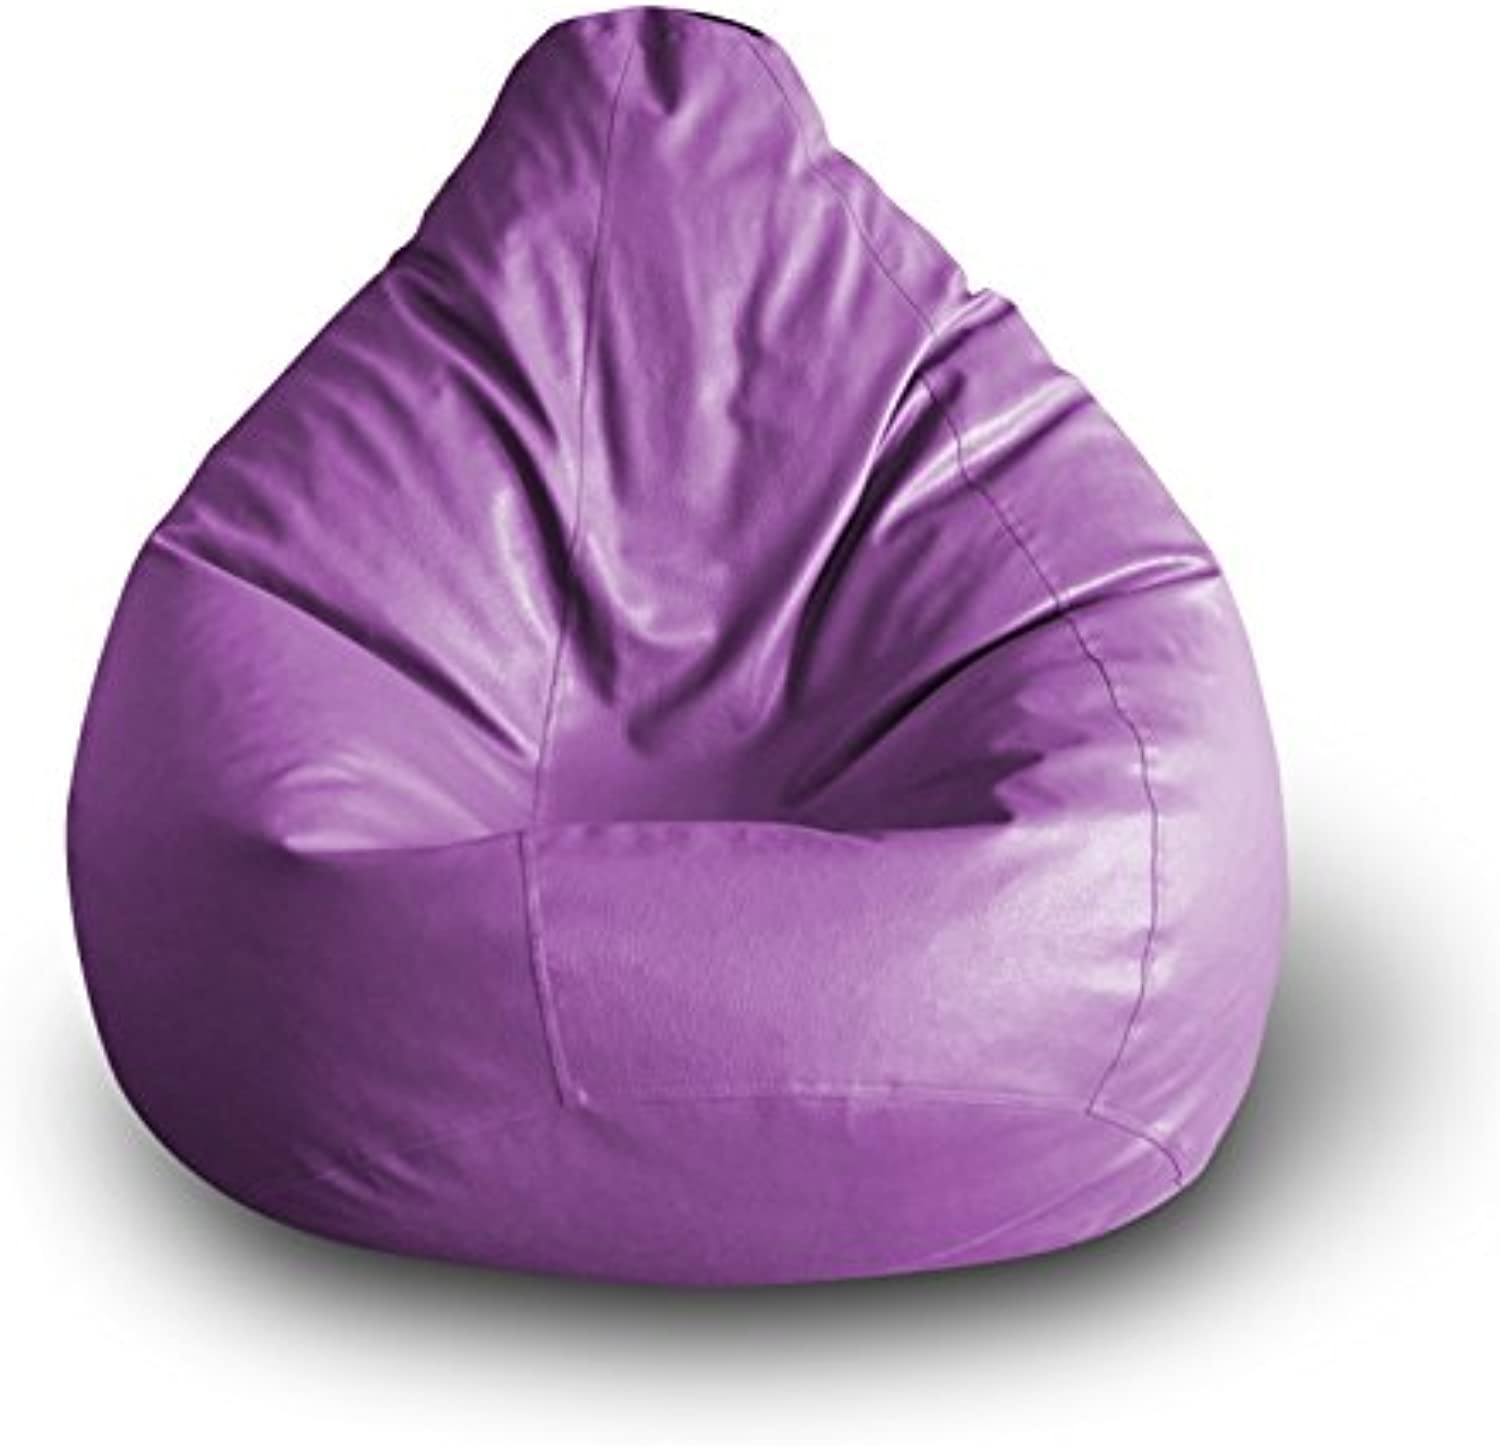 Style Homez Classic Bean Bag XXL Size Purple Cover Only